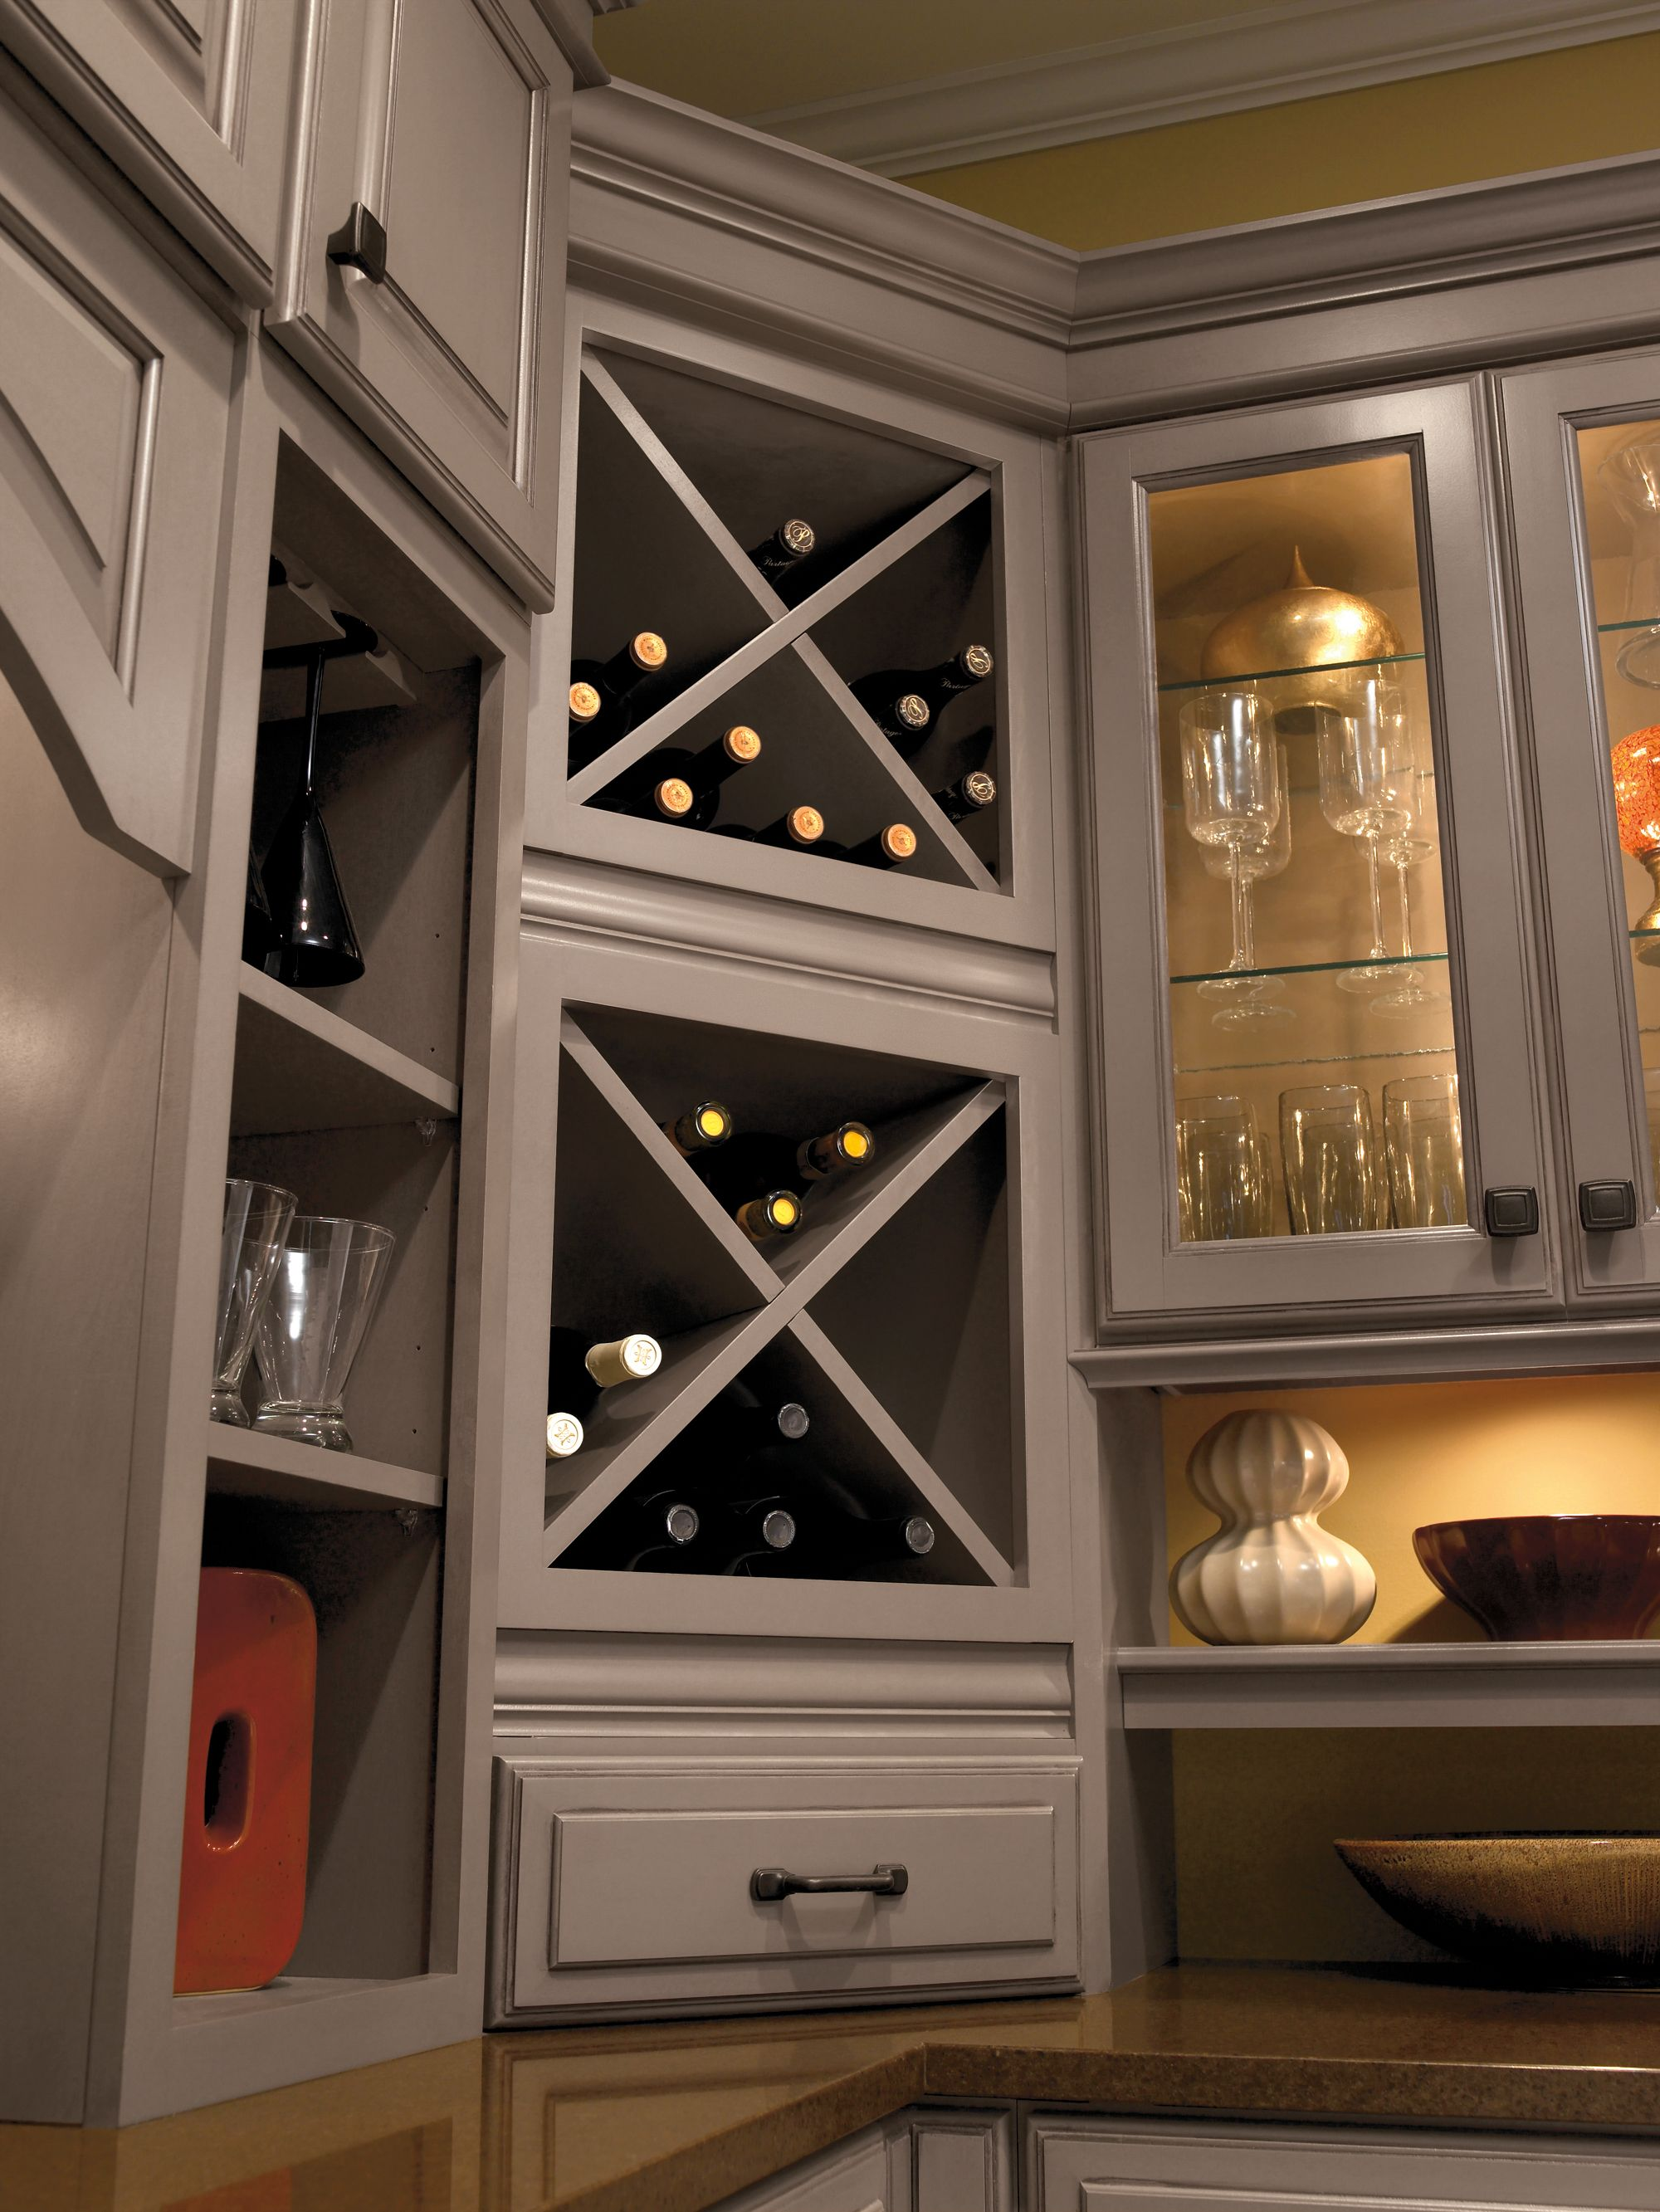 schrock kitchen cabinets led light fixture built in wine rack cabinet storage masterbrand